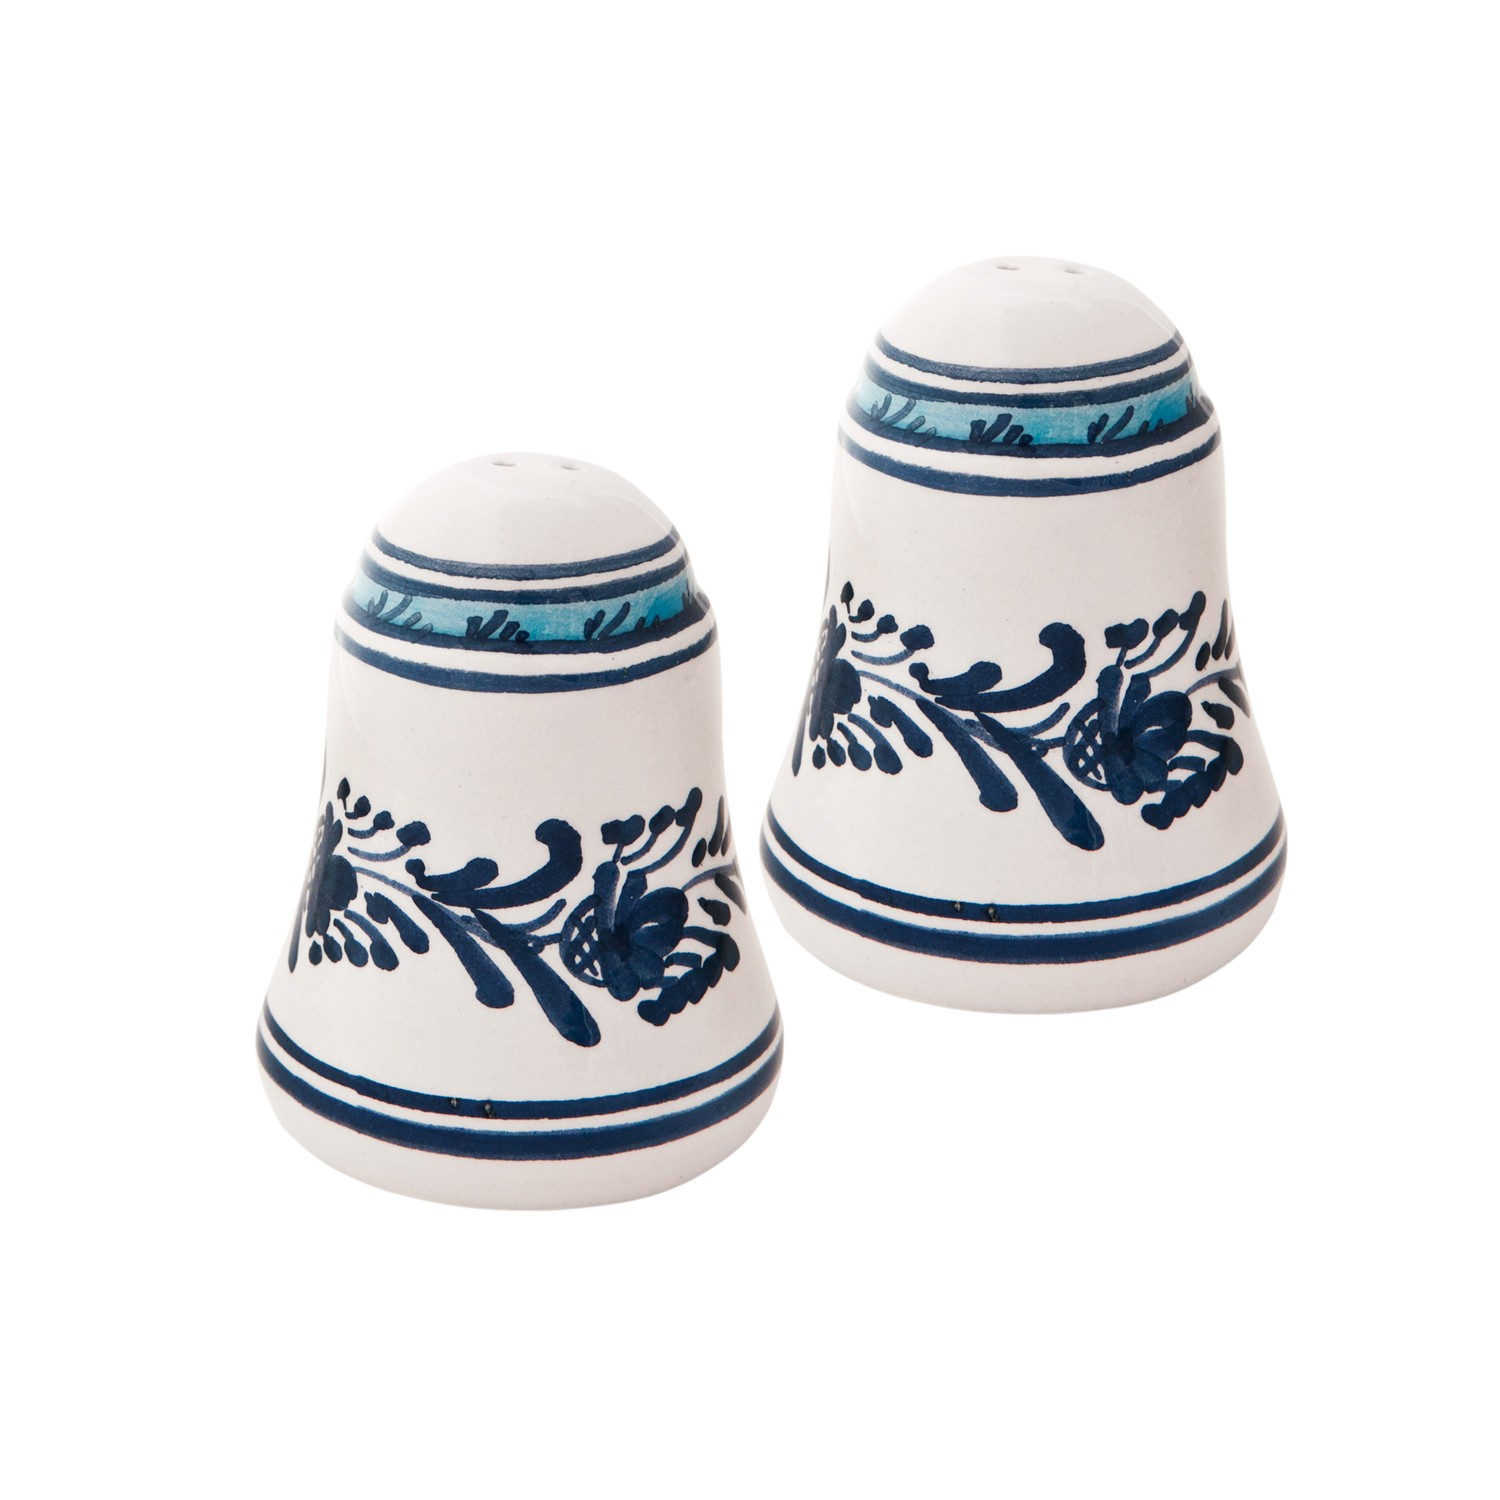 Salt and Pepper Shakers, Skyriana-1